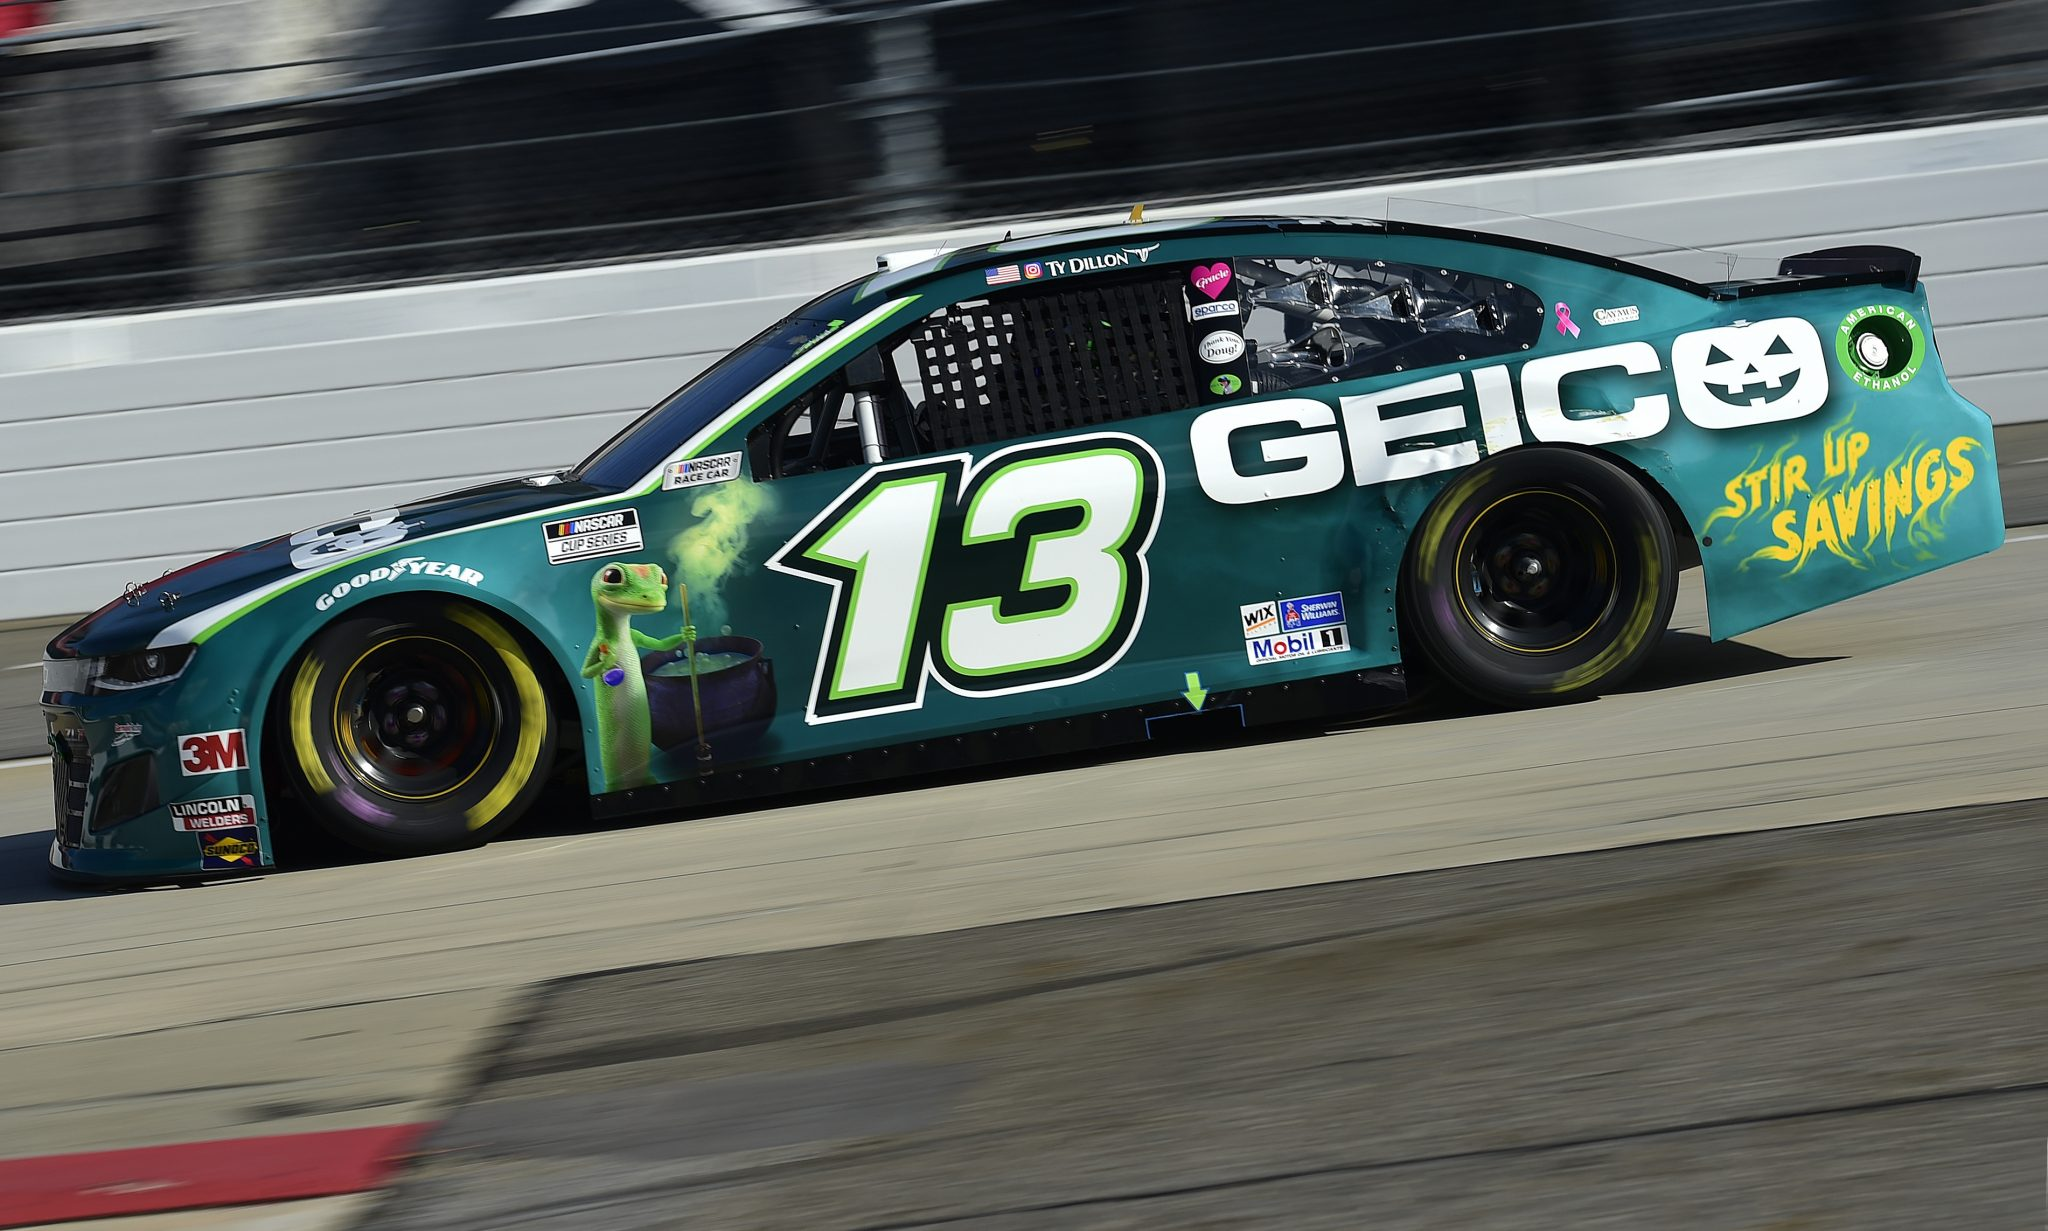 MARTINSVILLE, VIRGINIA - NOVEMBER 01: Ty Dillon, driver of the #13 GEICOween Chevrolet, drives during the NASCAR Cup Series Xfinity 500 at Martinsville Speedway on November 01, 2020 in Martinsville, Virginia. (Photo by Jared C. Tilton/Getty Images) | Getty Images